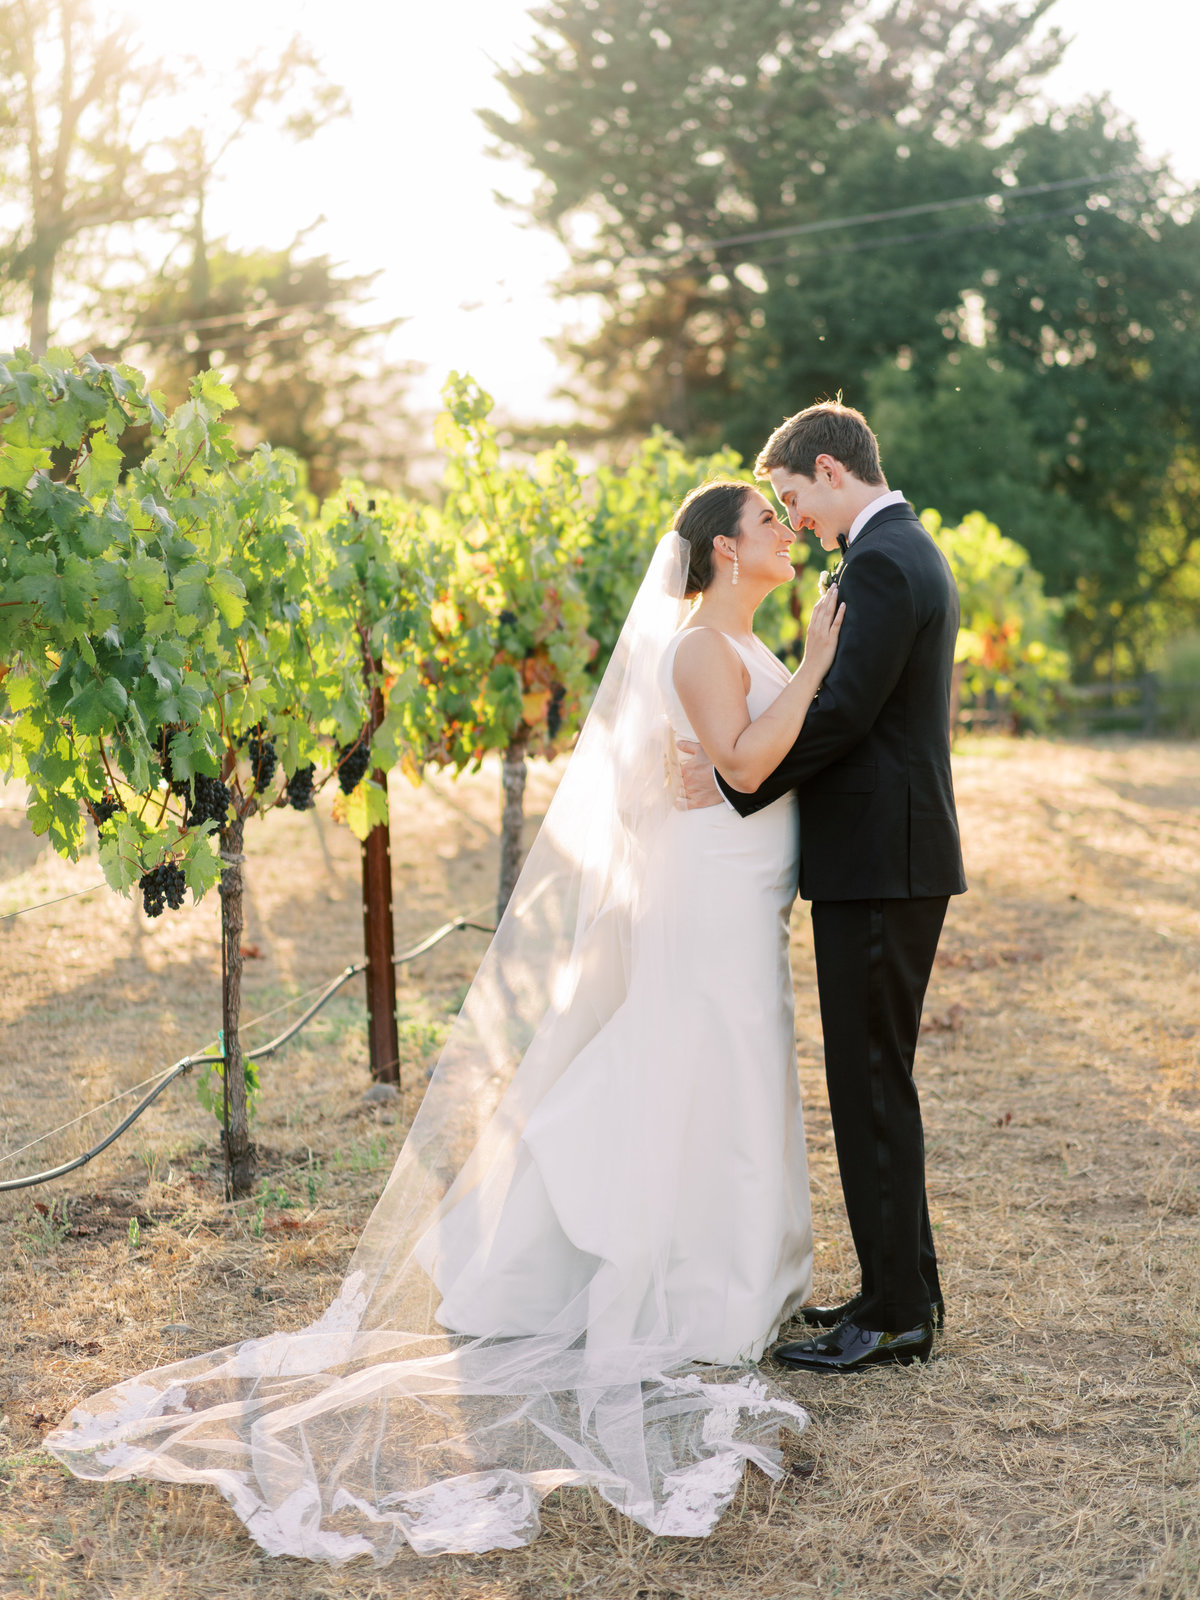 Kelsey + Alex Sonoma Buena Vista Winery Wedding - Cassie Valente Photography 0162